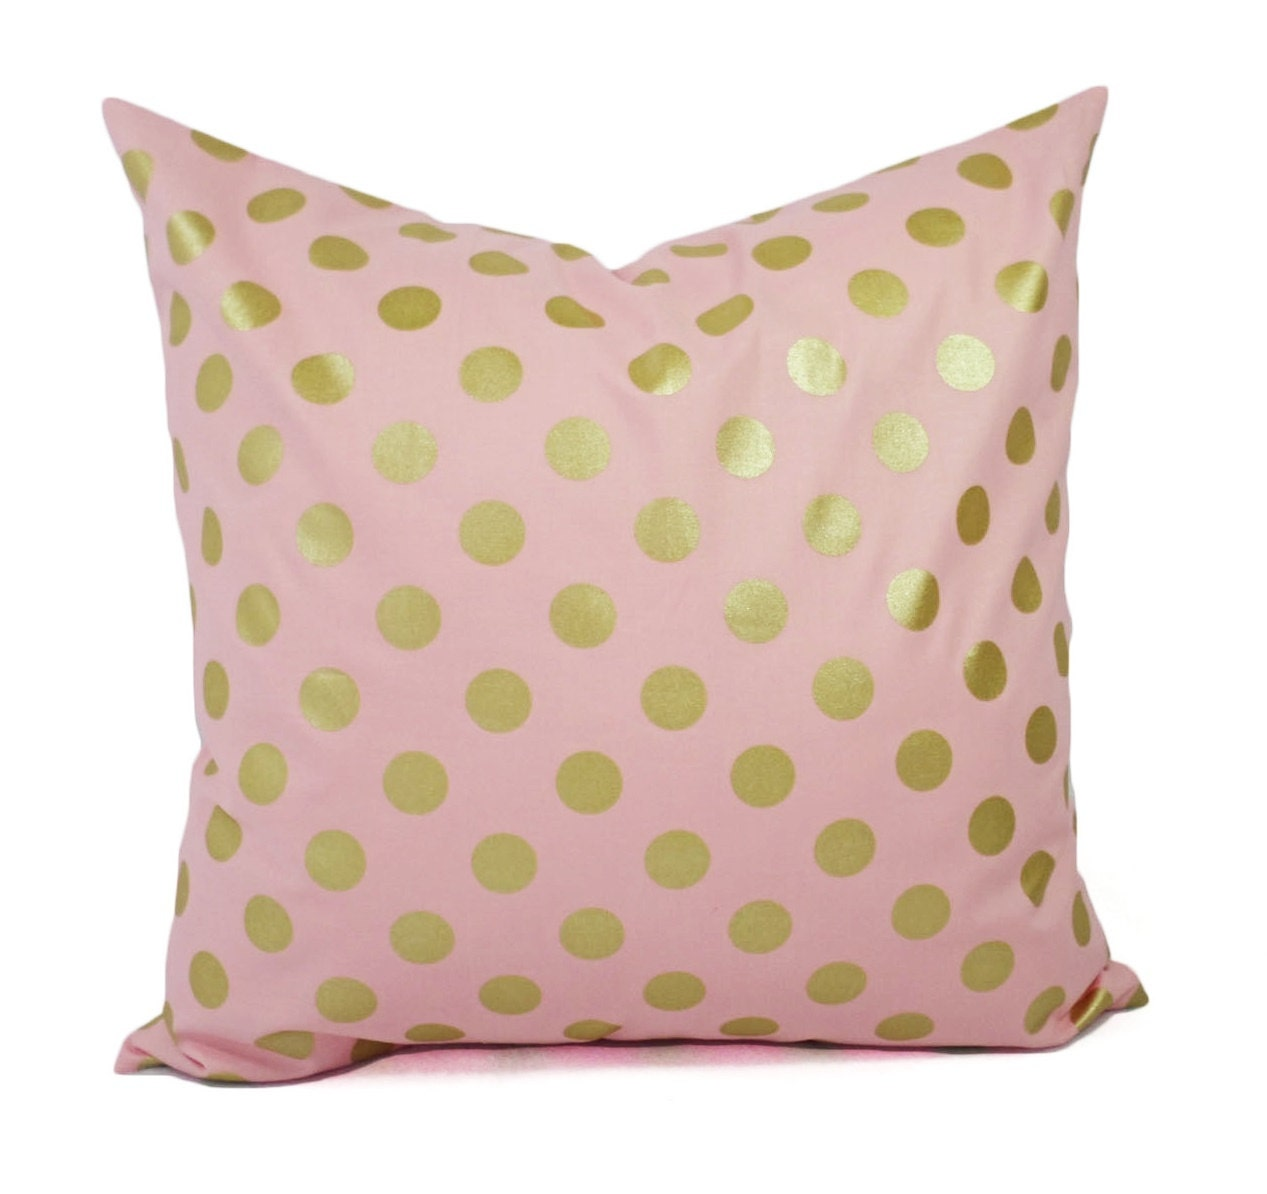 Two Metallic Gold Pillow Covers Pink and Gold Pillow Cover